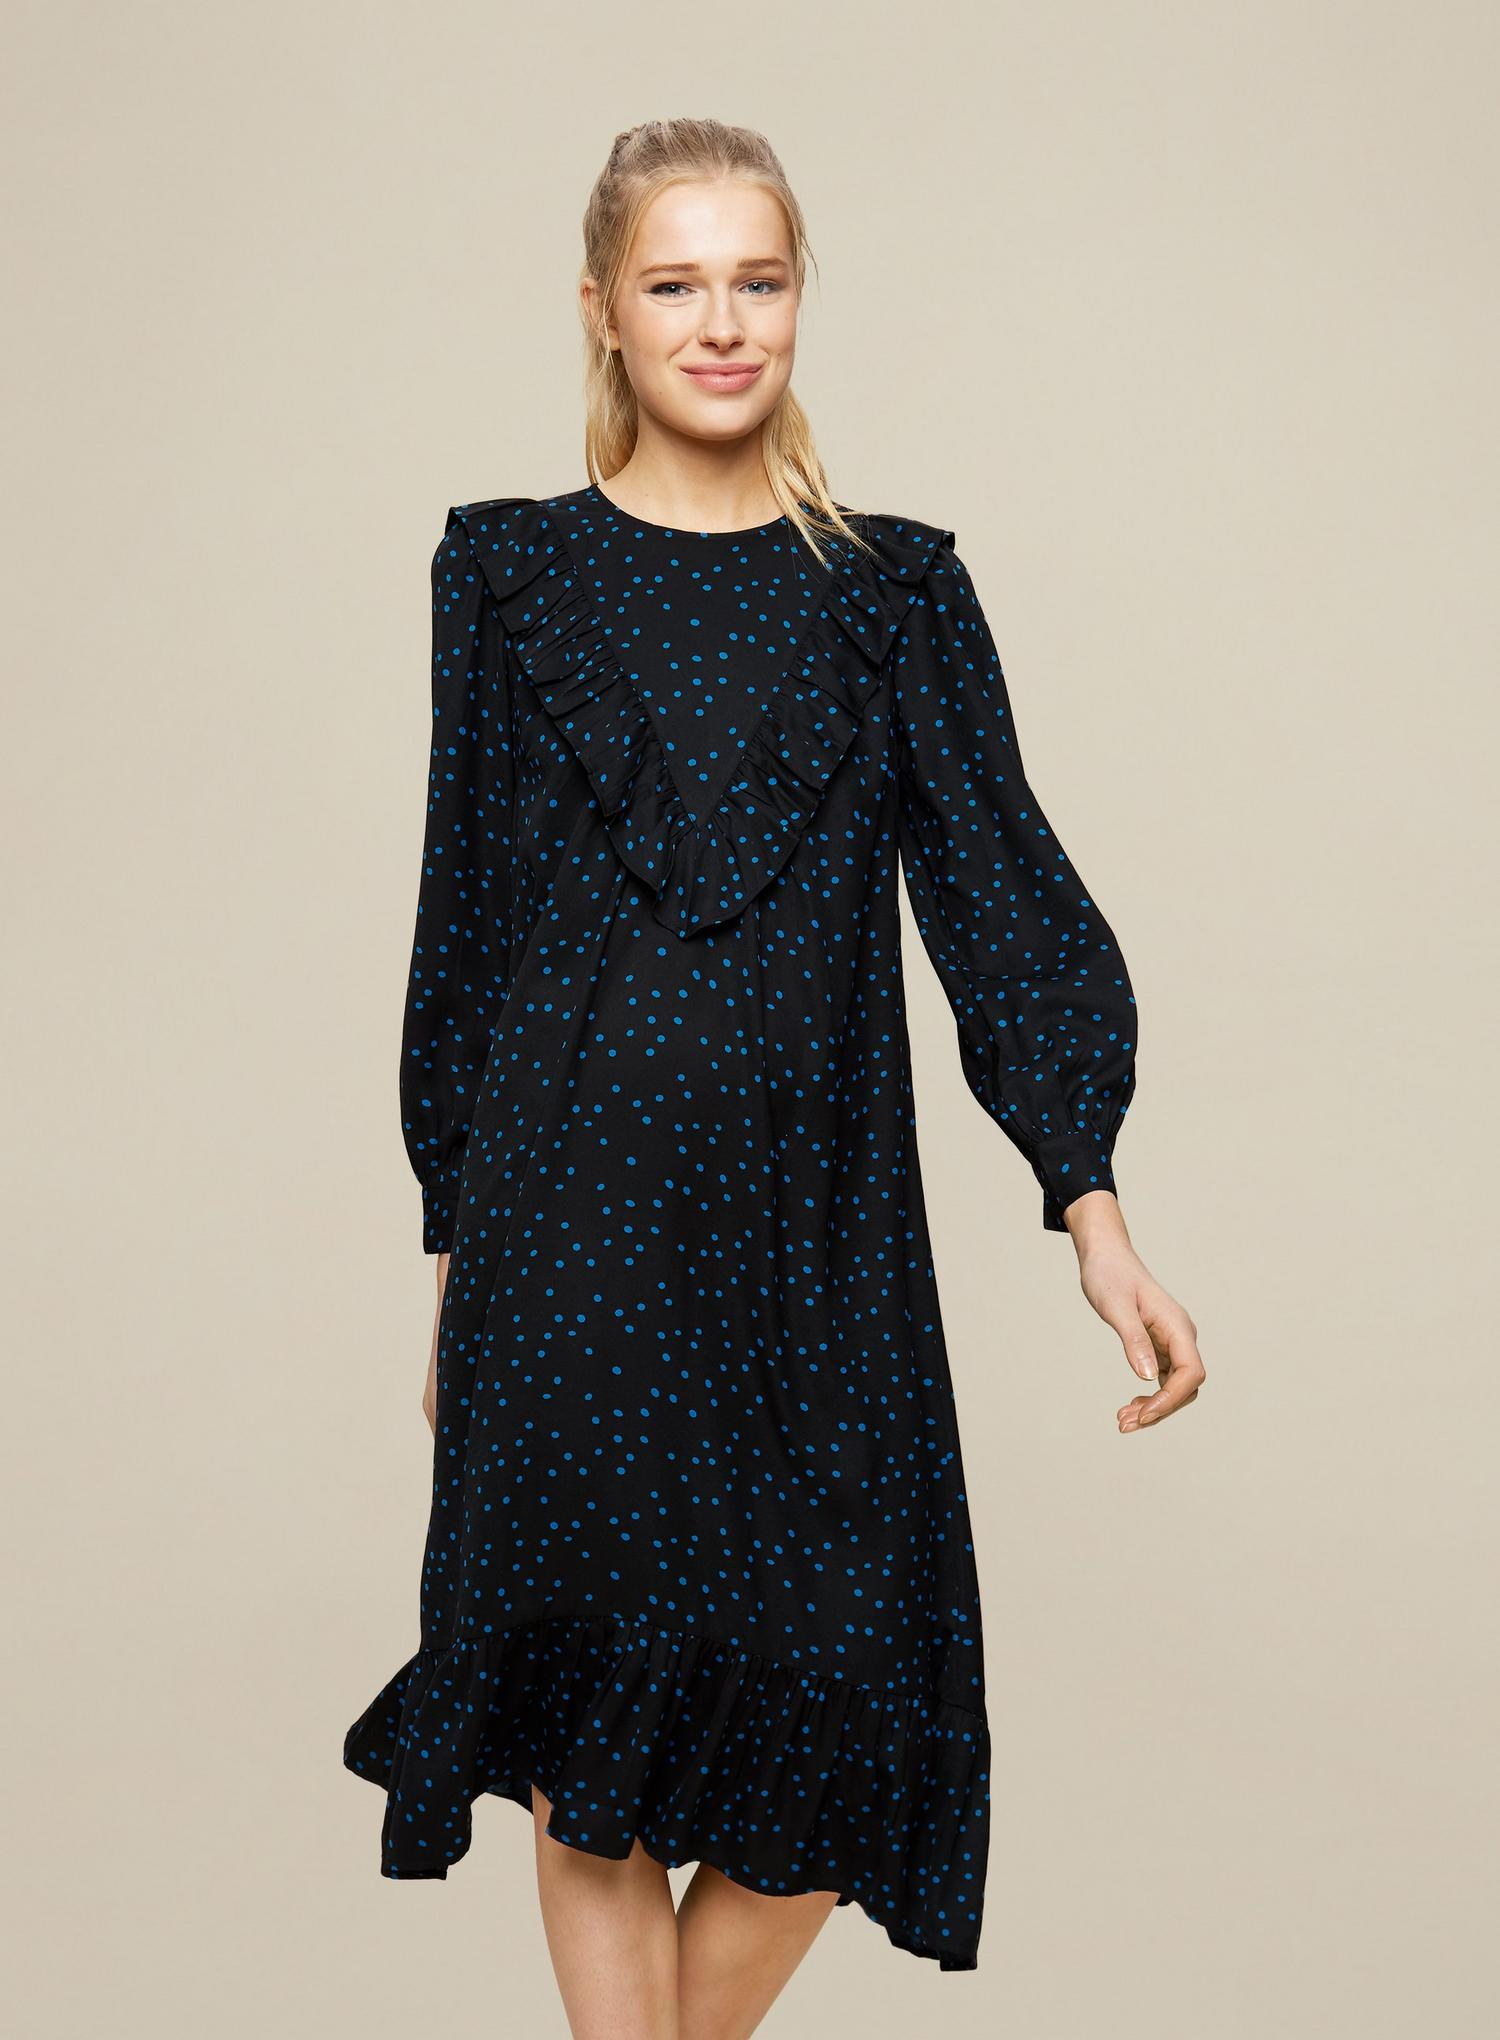 105 Black Spot print Frill Midi Dress image number 1